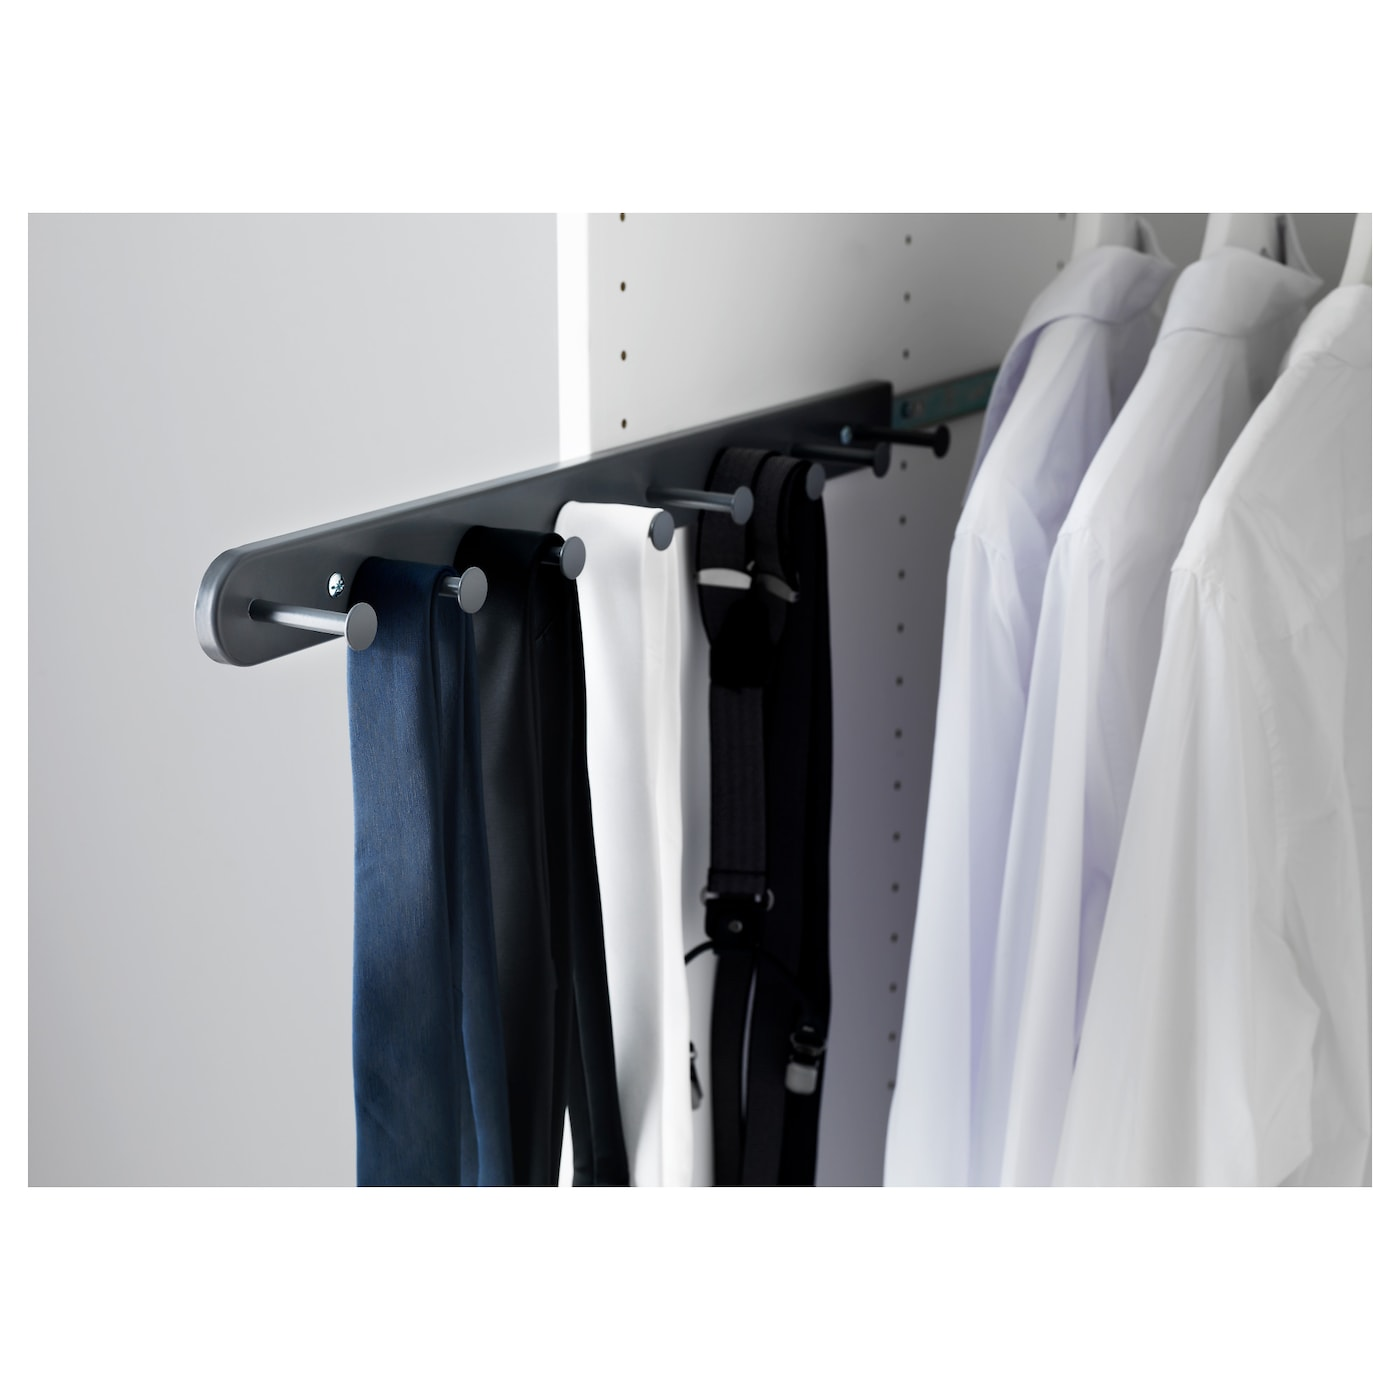 IKEA KOMPLEMENT pull-out multi-use hanger Makes use of unused space on the inside of your wardrobe.